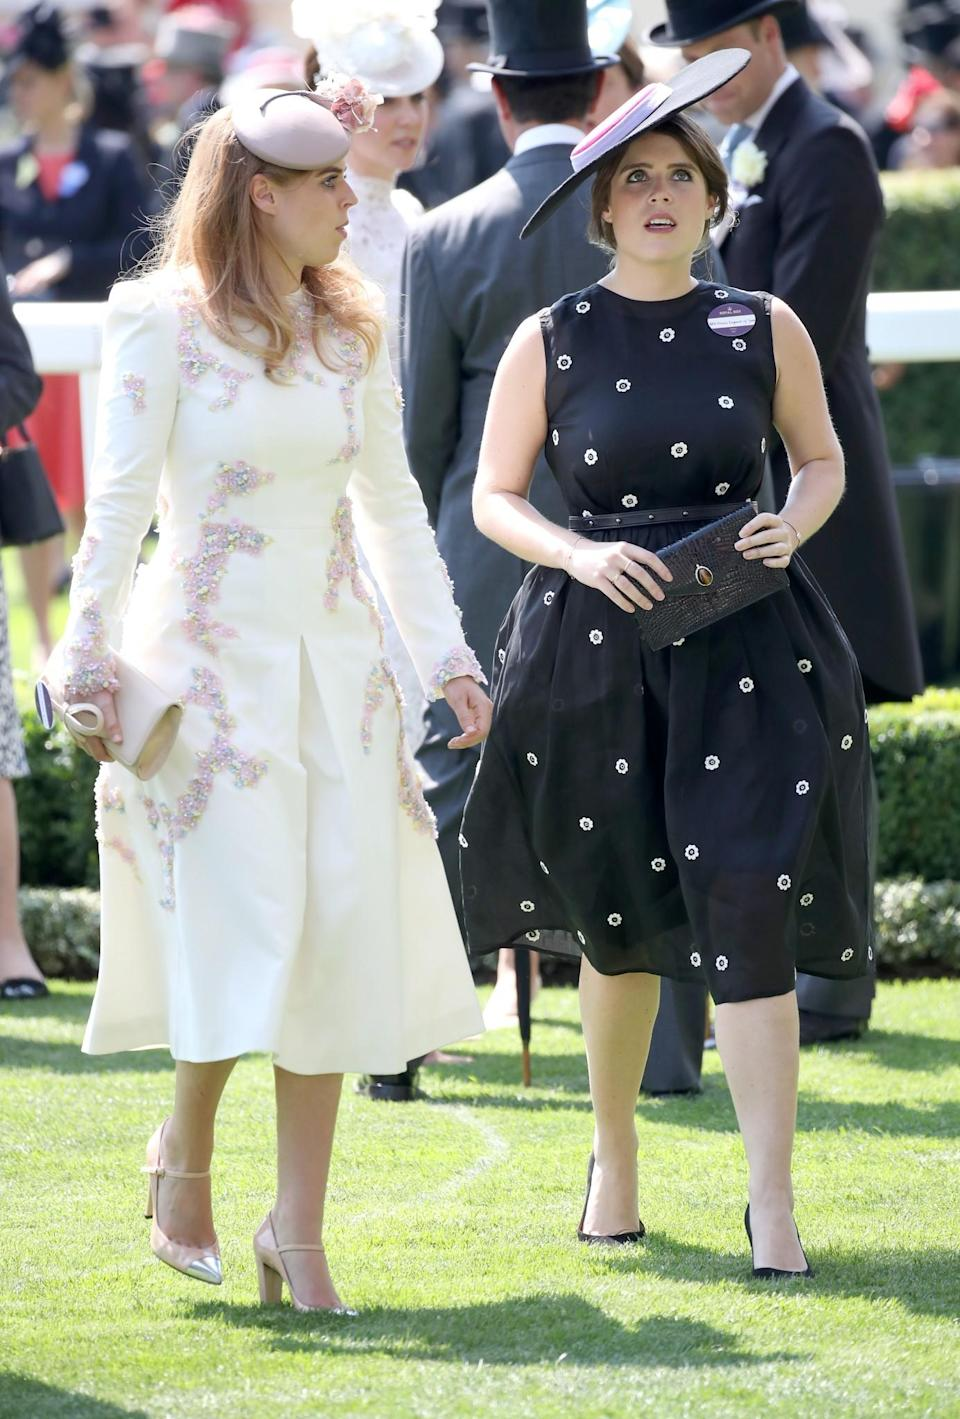 <p>The Princesses of York, known for their adventorous sense of style, arrived wearing rather modest outfits. Beatrice opted for a white, embellished dress while Eugenie went against the grain in a black dress teamed with a tricolour hat. <br><em>[Photo: Getty]</em> </p>